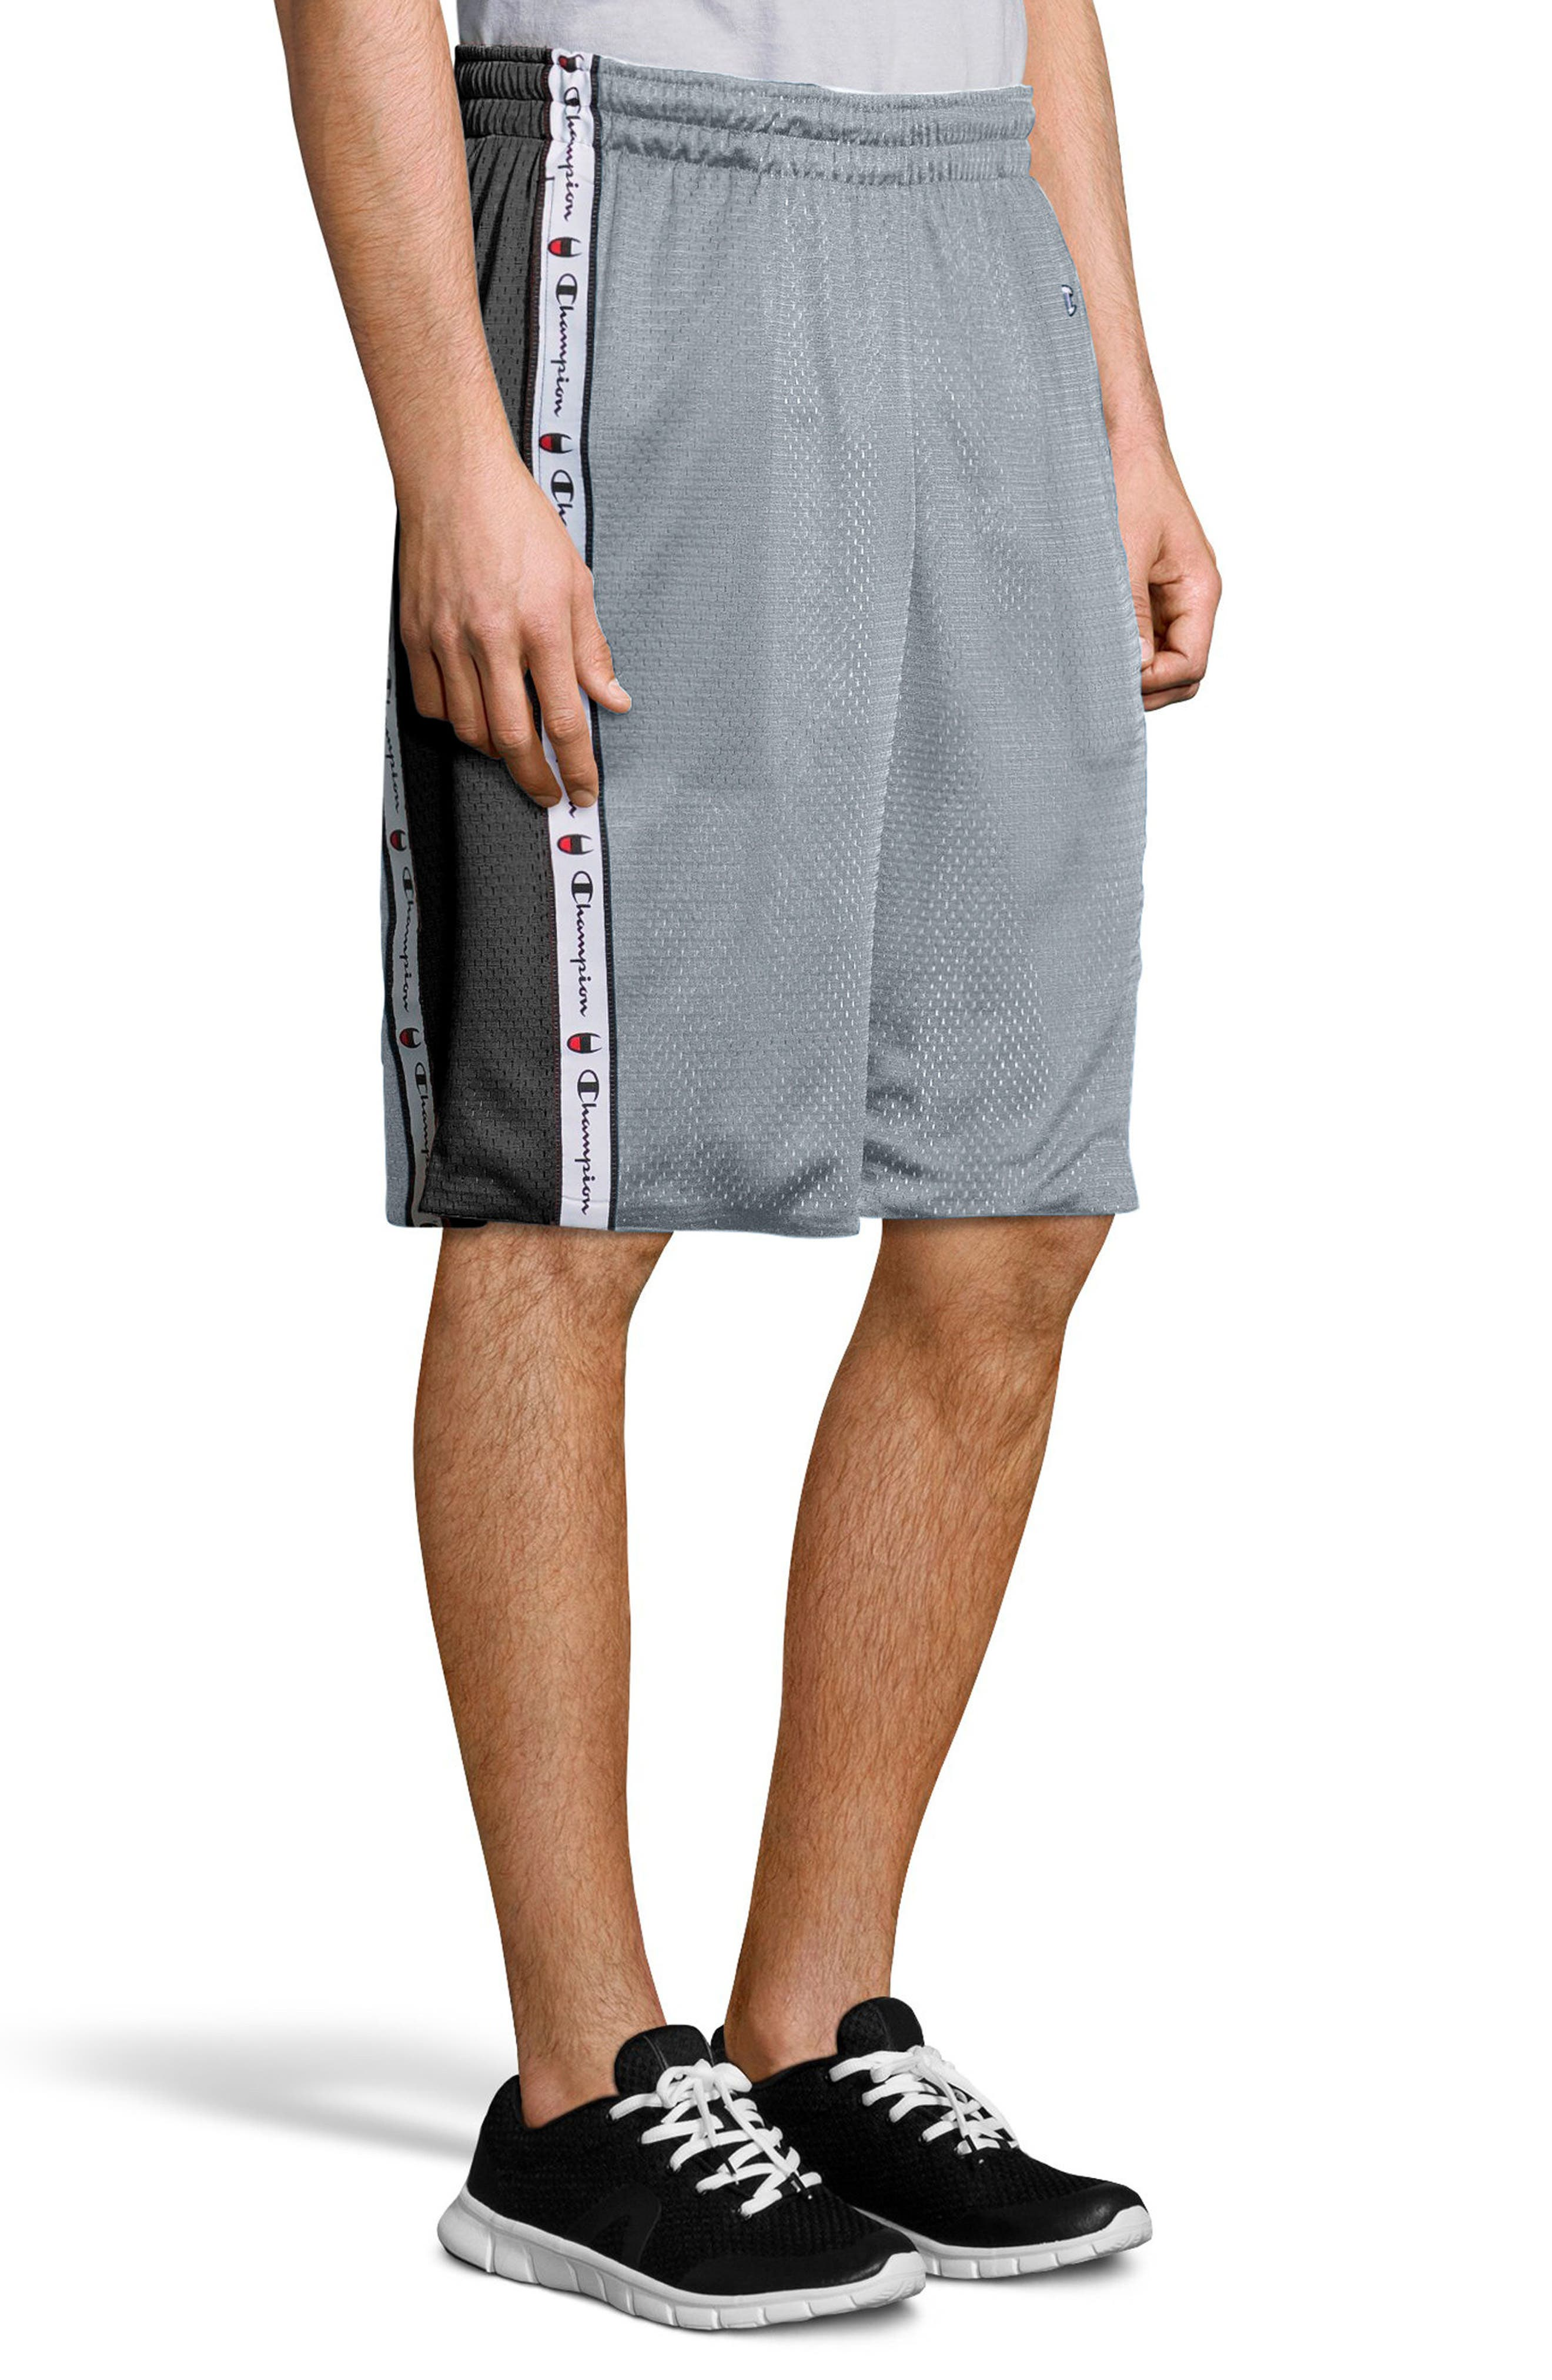 Reversible Mesh Shorts,                             Alternate thumbnail 3, color,                             Silverstone/ Black